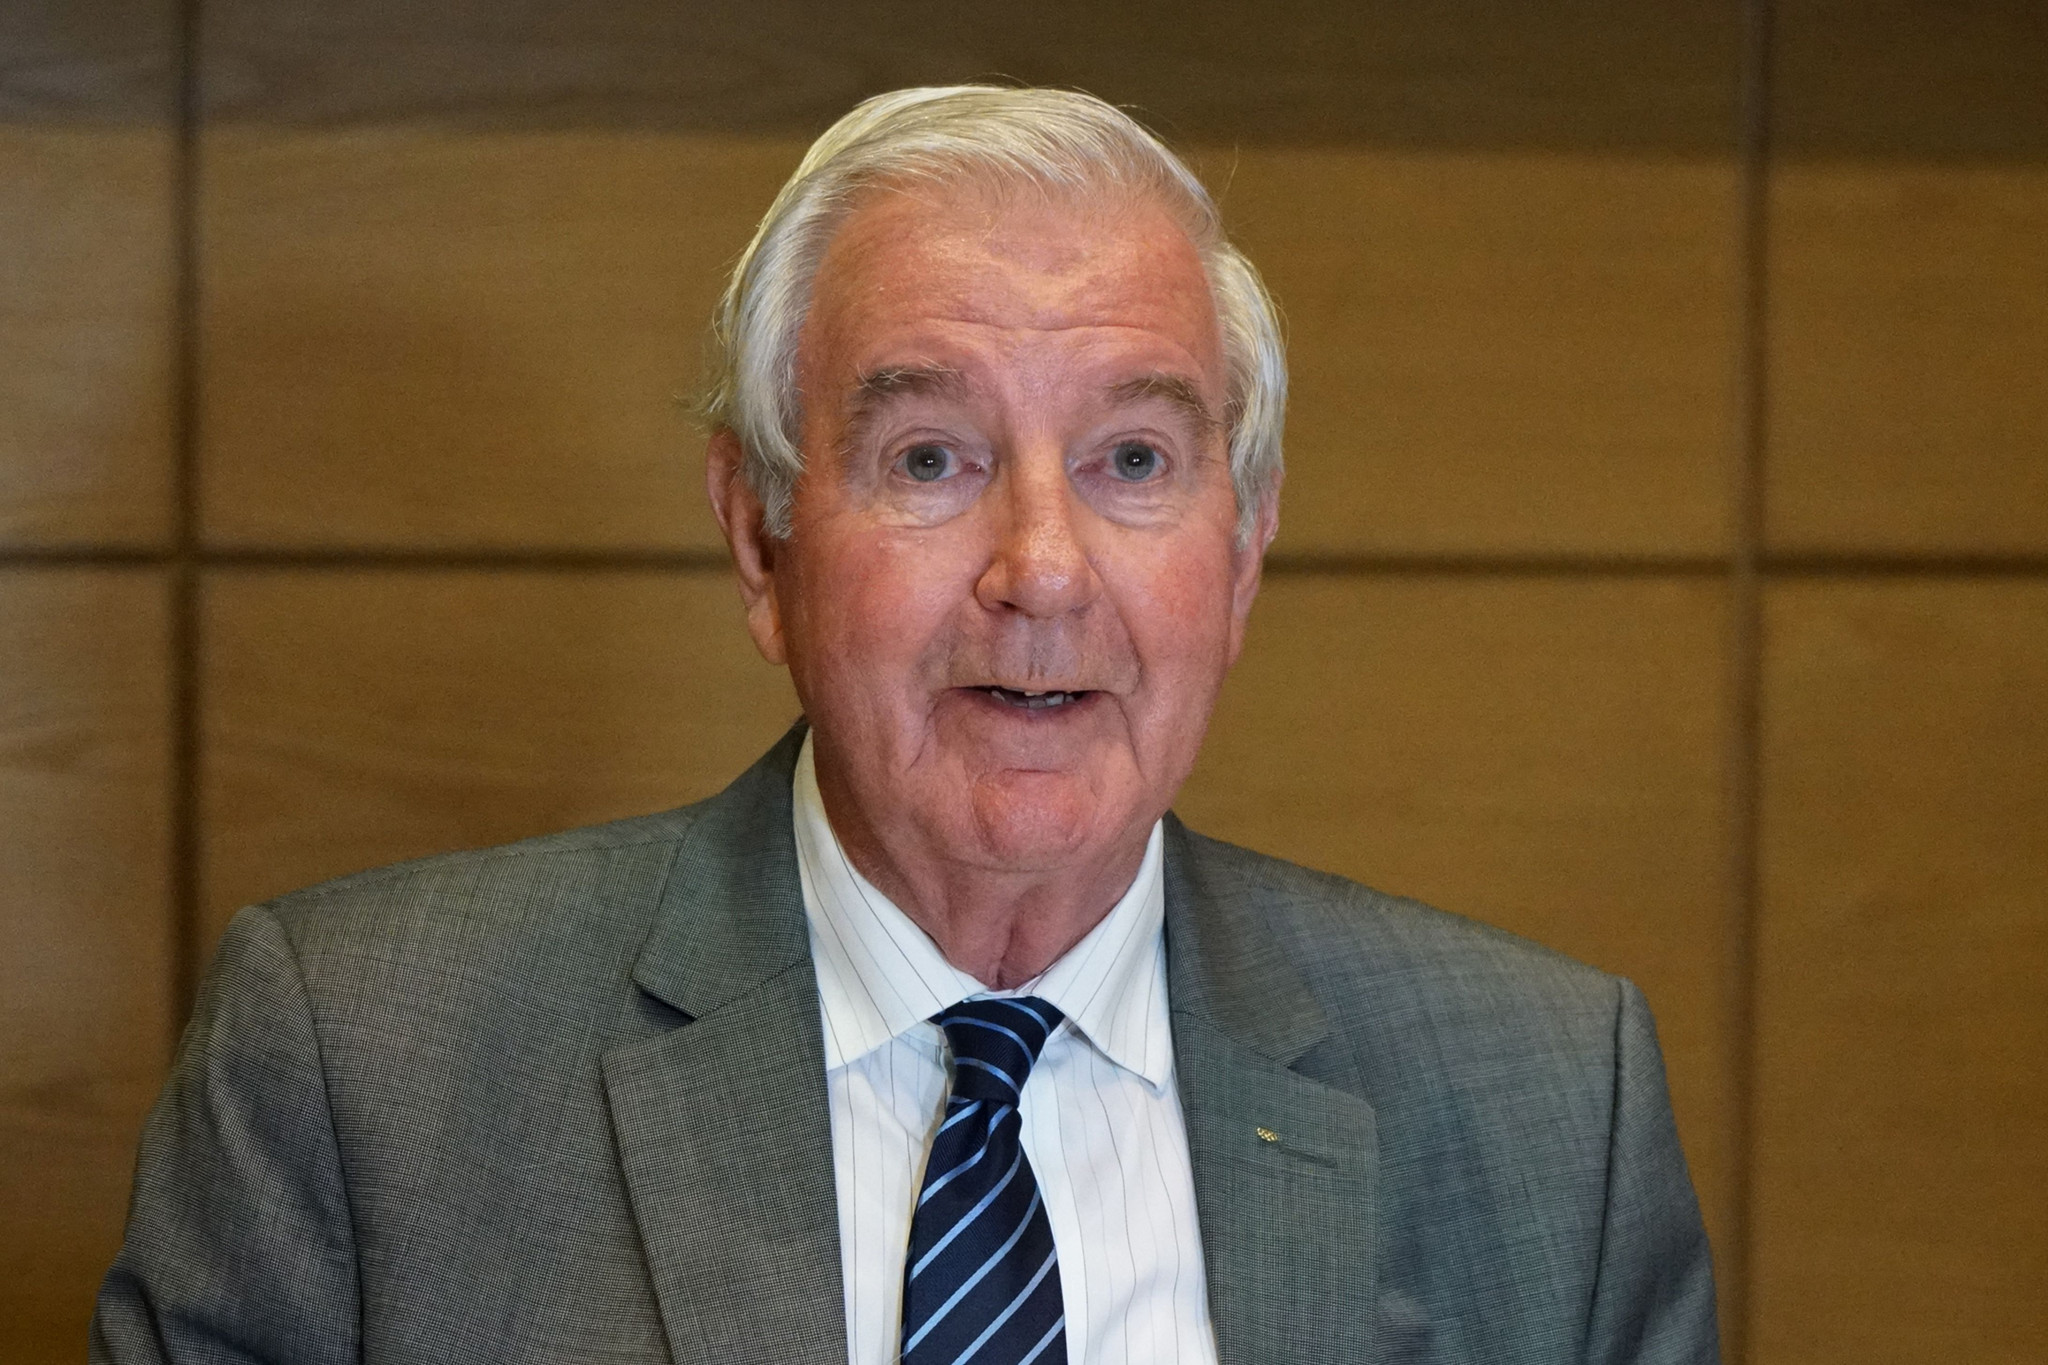 WADA President defends decision to reinstate Russia in open letter